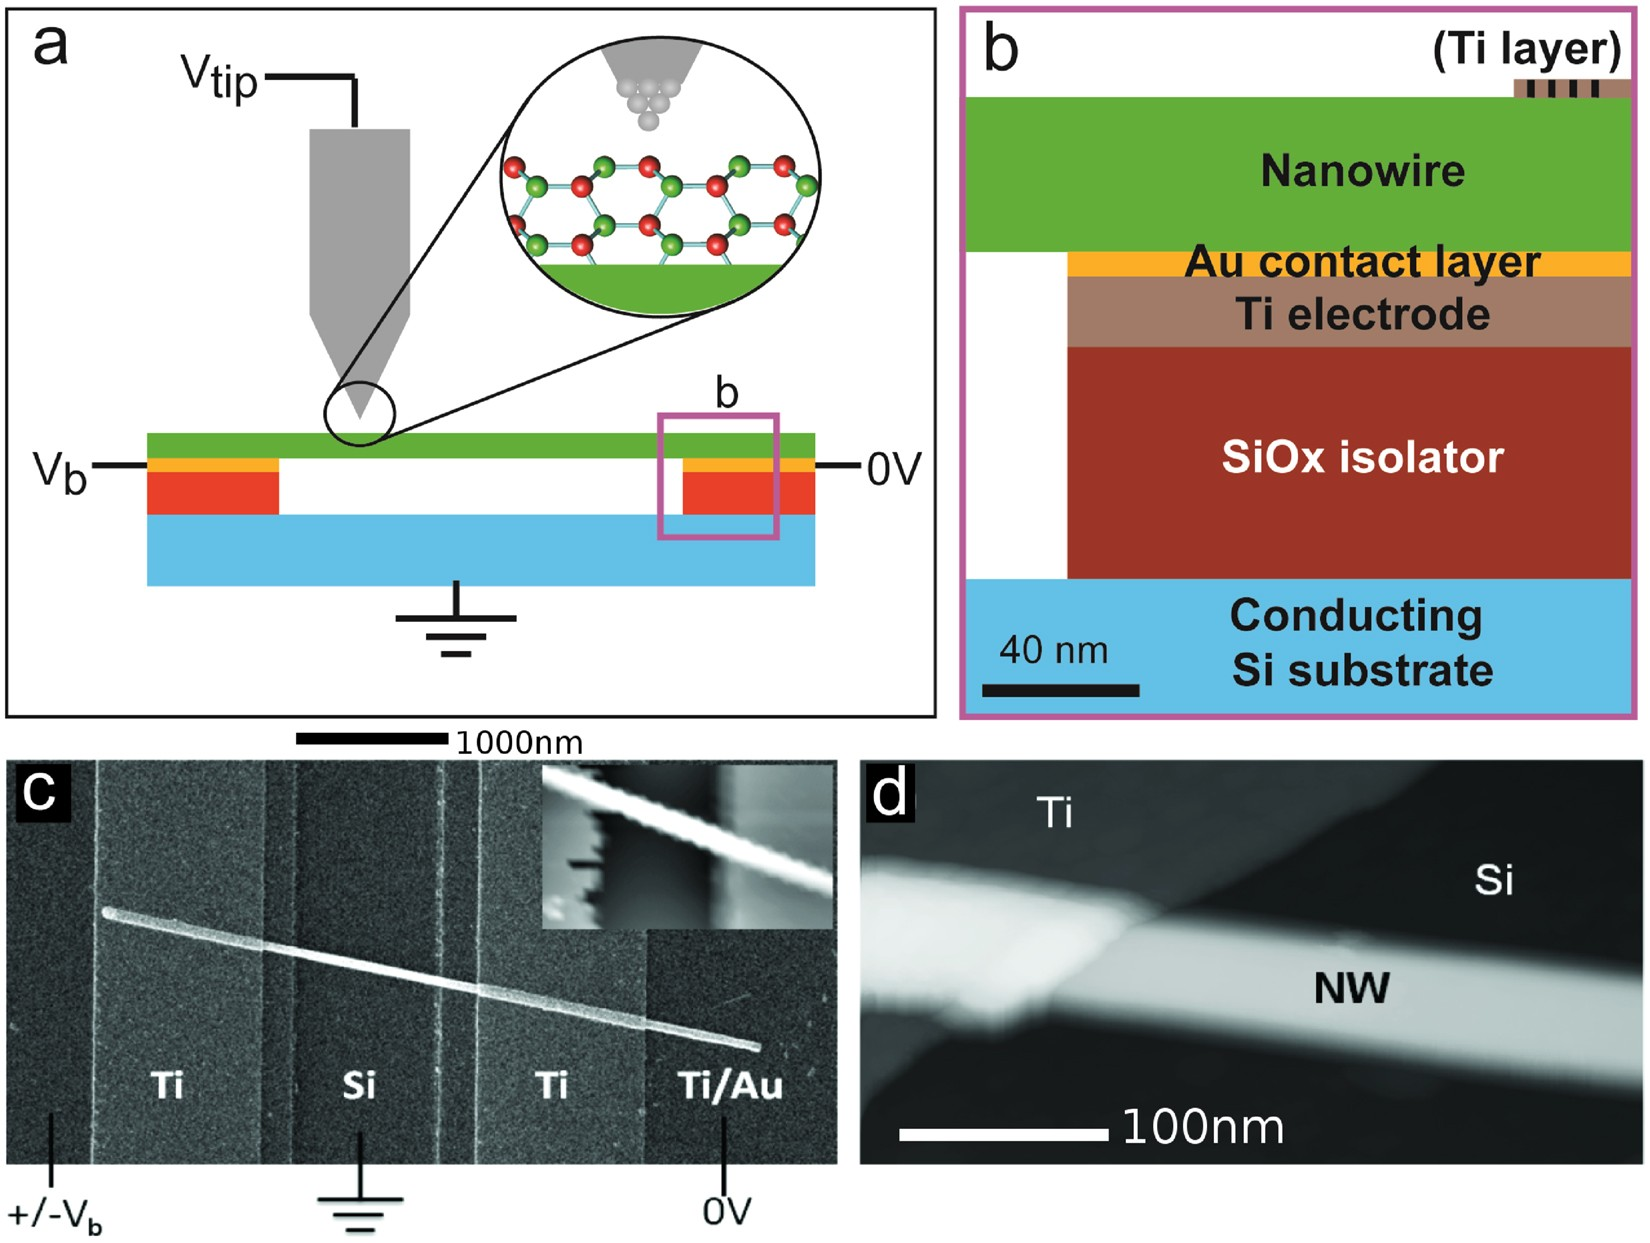 imaging atomic scale dynamics on iii–v nanowire surfaces during electrical  operation | scientific reports